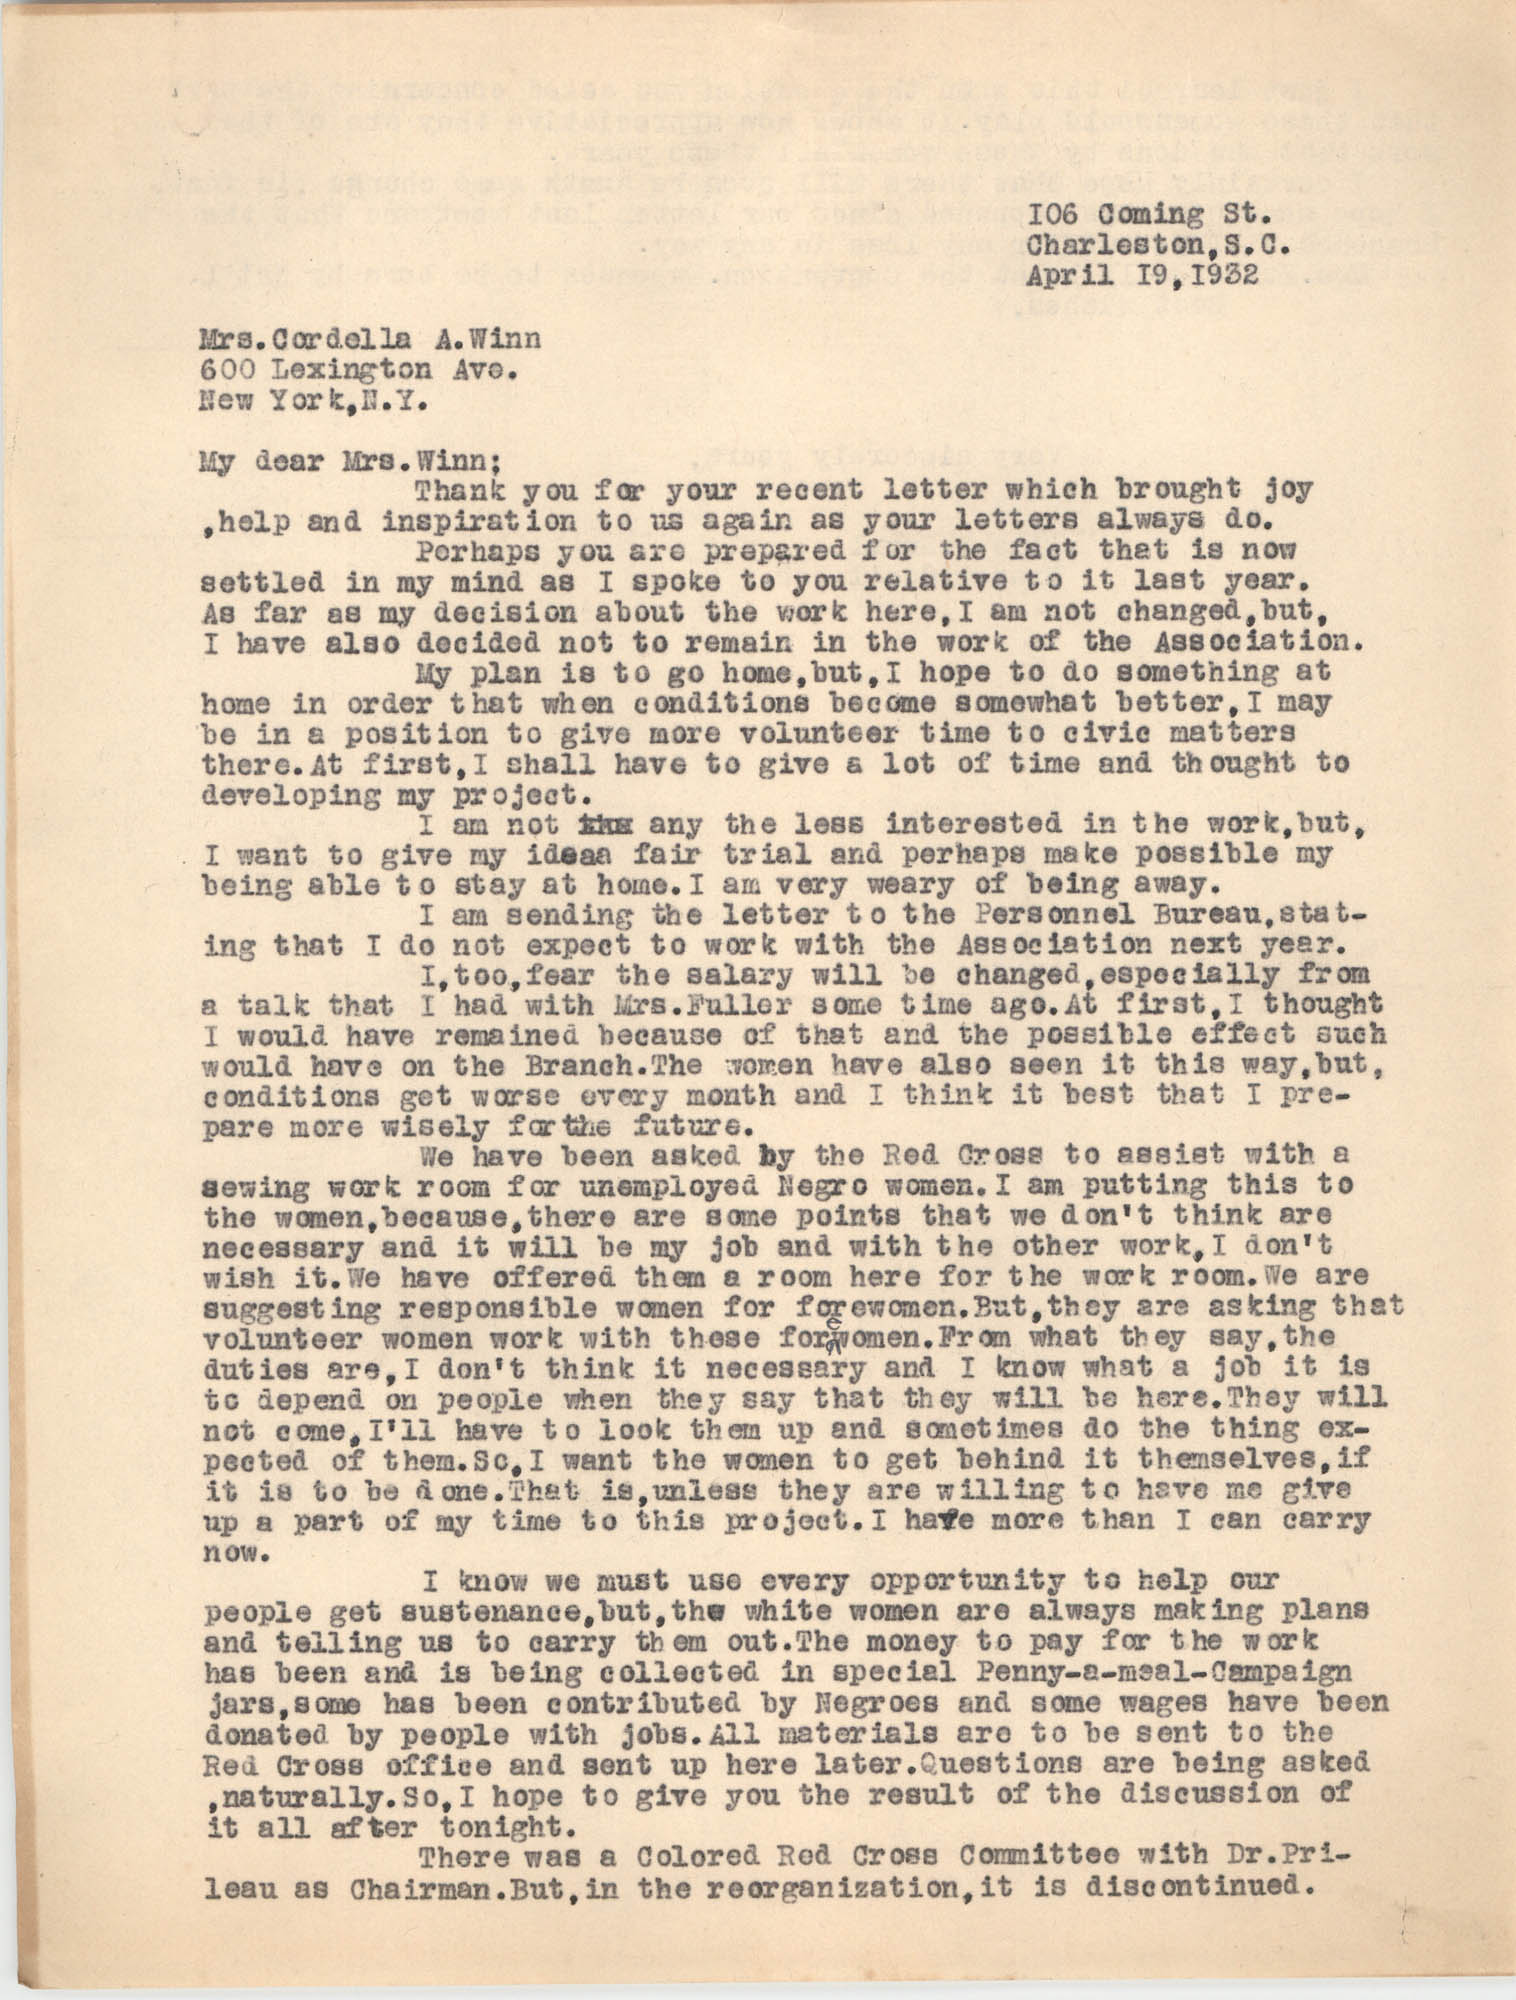 Letter from Ella L. Smyrl to Cordella A. Winn, April 19, 1932